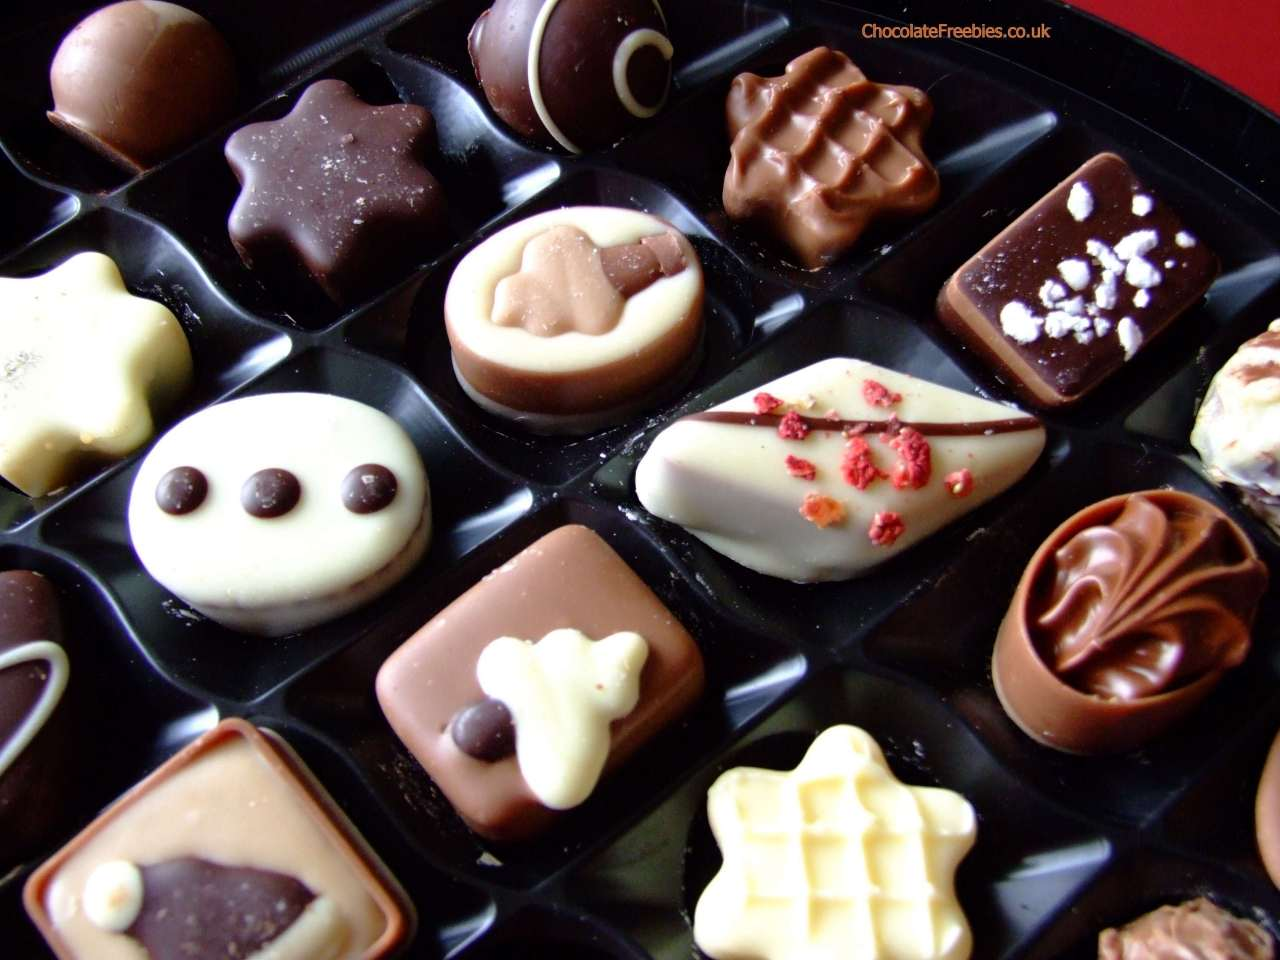 Chocolate Wallpaper   Yummy pictures of chocolates to drool over 1280x960